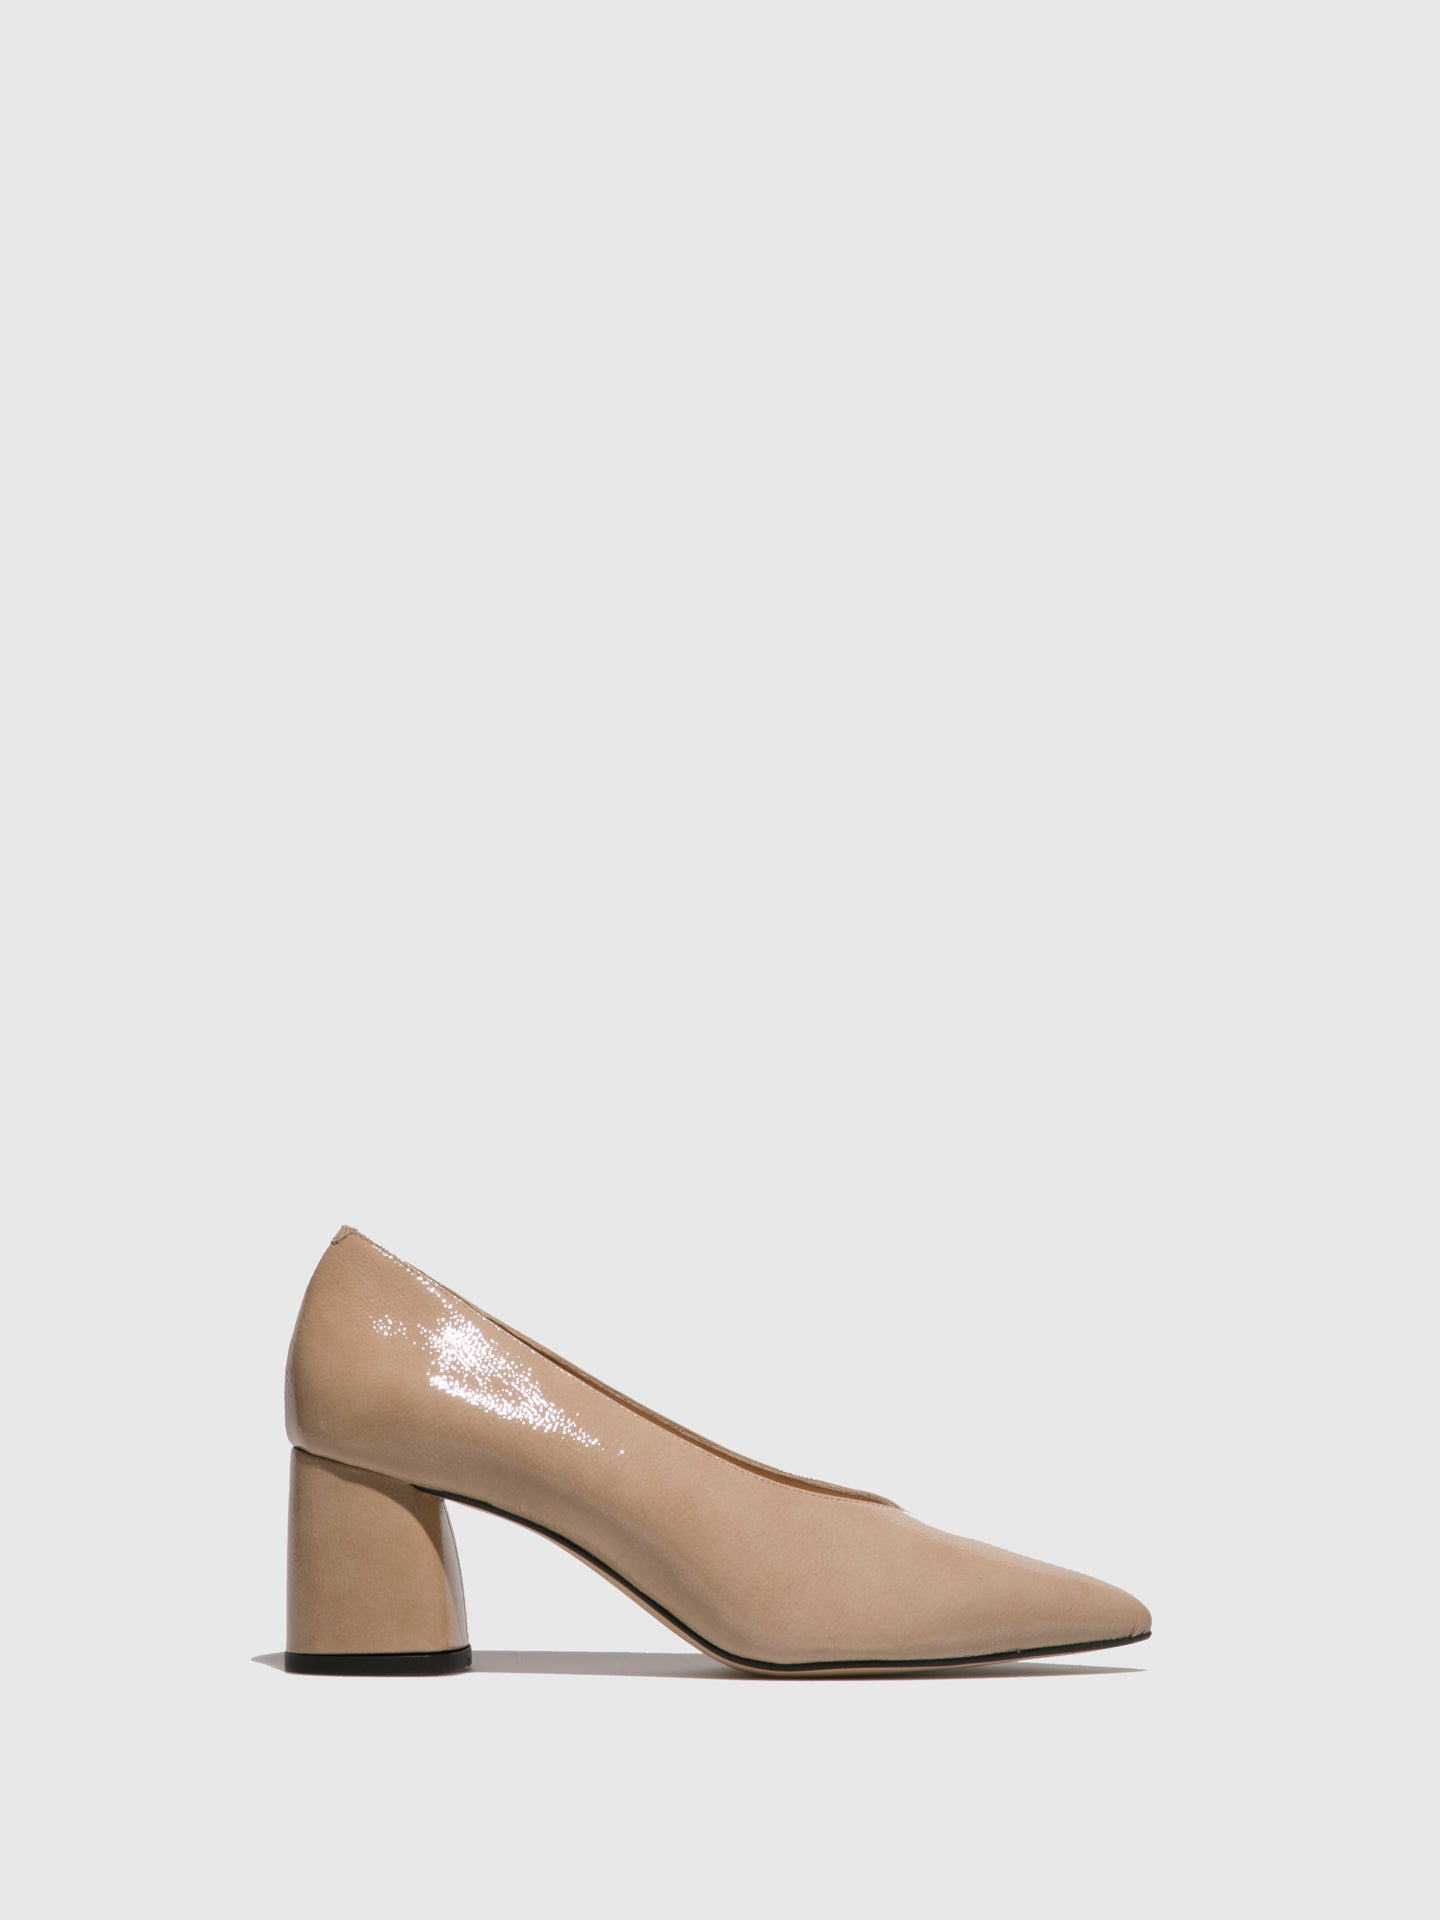 Sofia Costa Beige Pointed Toe Shoes